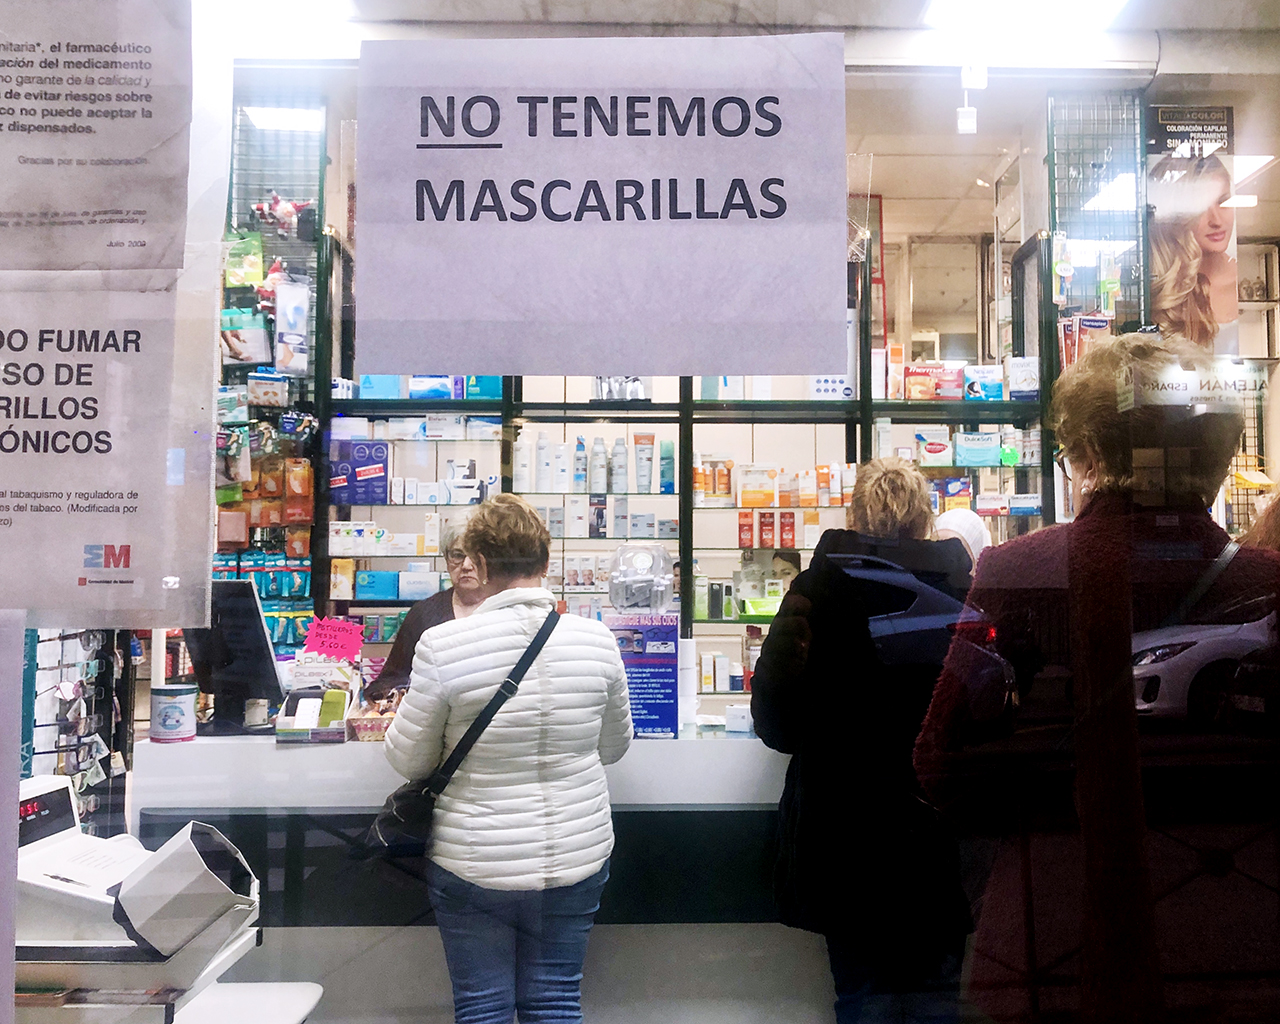 Farmacias sin mascarillas. Madrid. 05/03/2020.